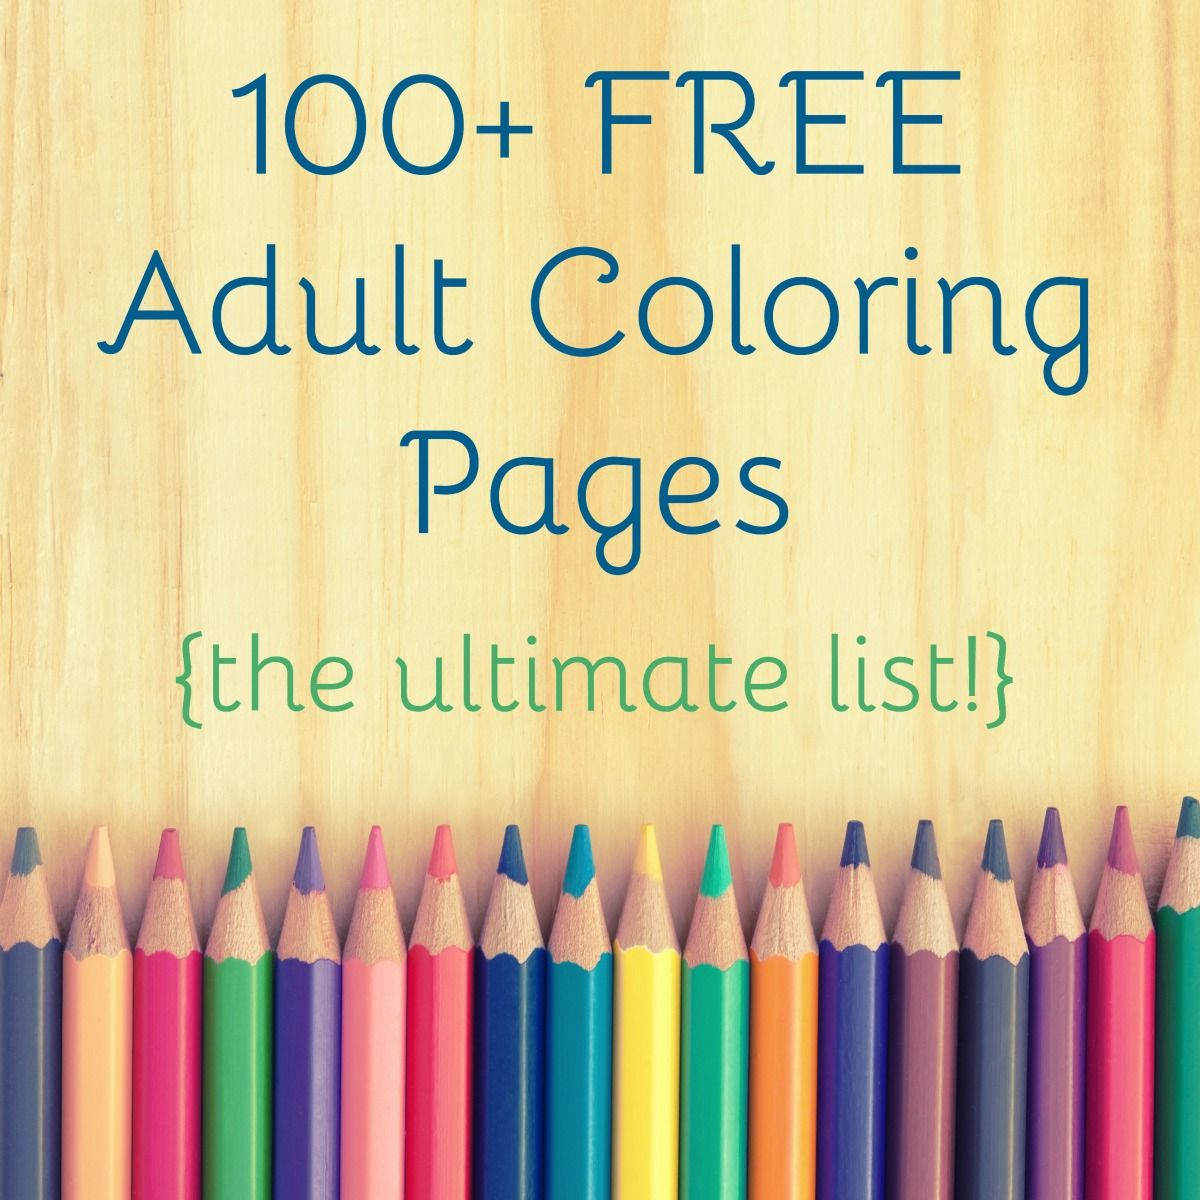 Summer coloring pages for middle school - 25 Free Adult Coloring Pages